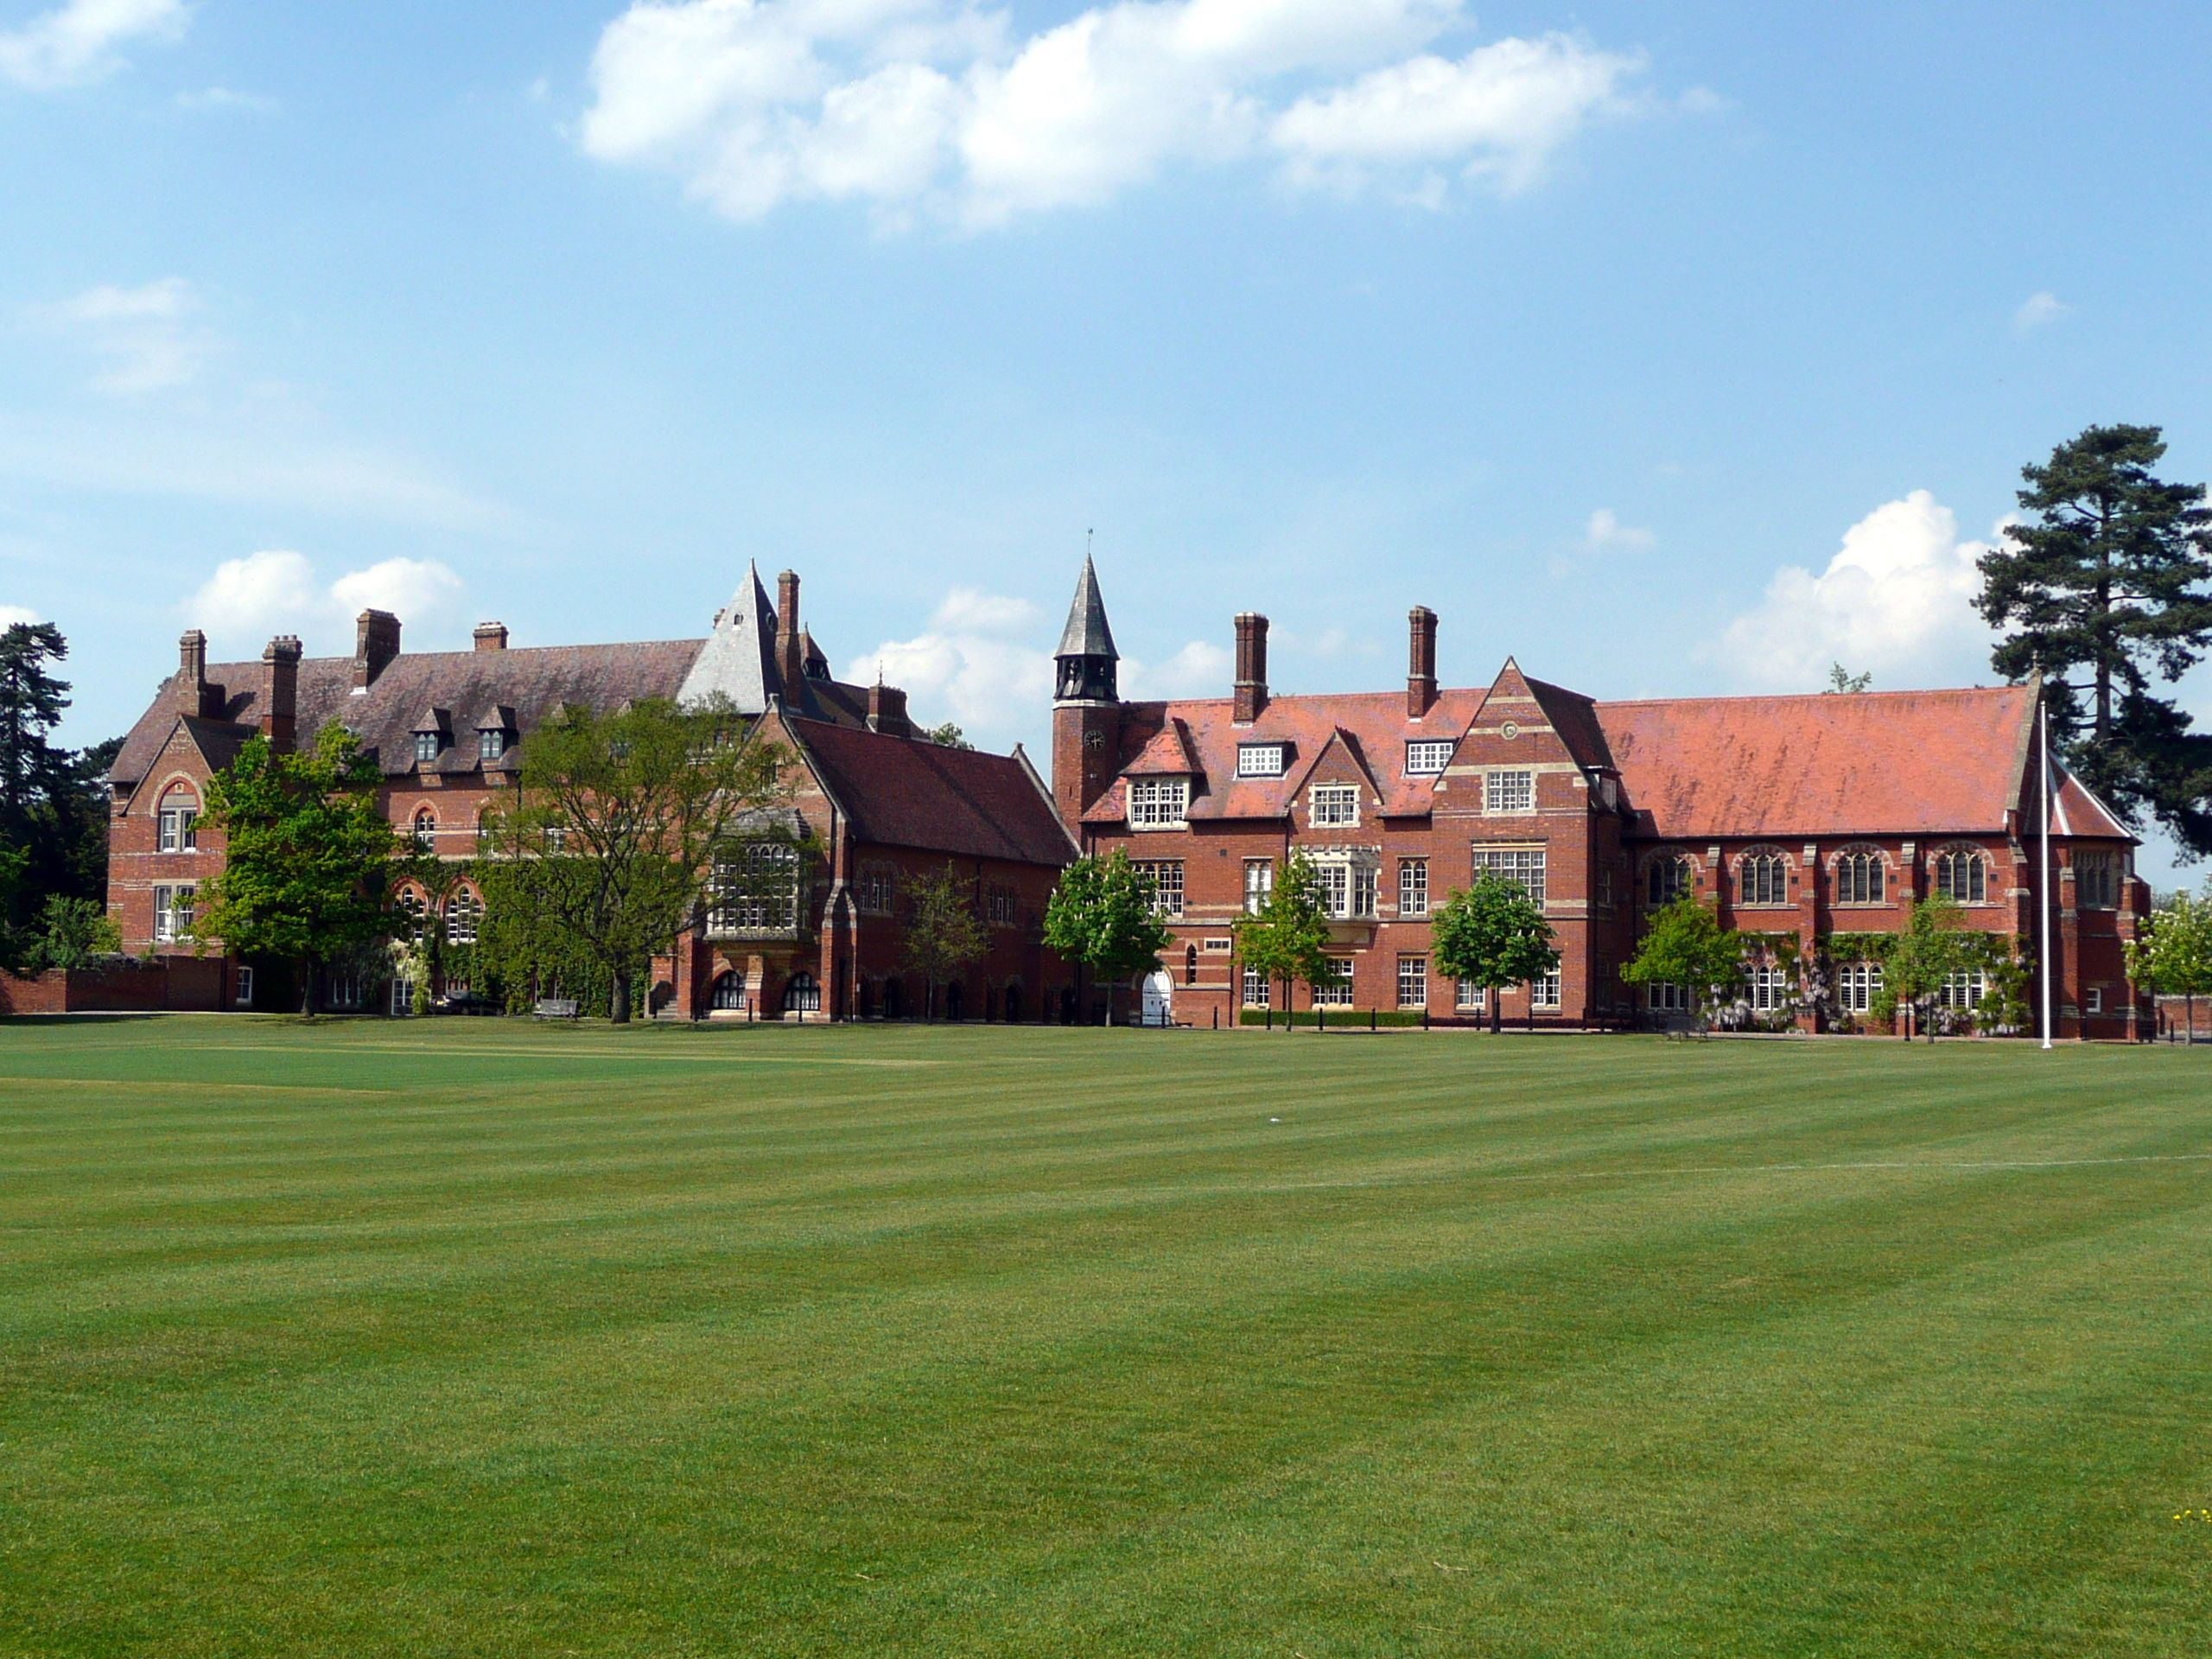 Abingdon_School,_Abingdon,_Oxfordshire,_England-23April2011.jpg 2,560×1,920 pixels